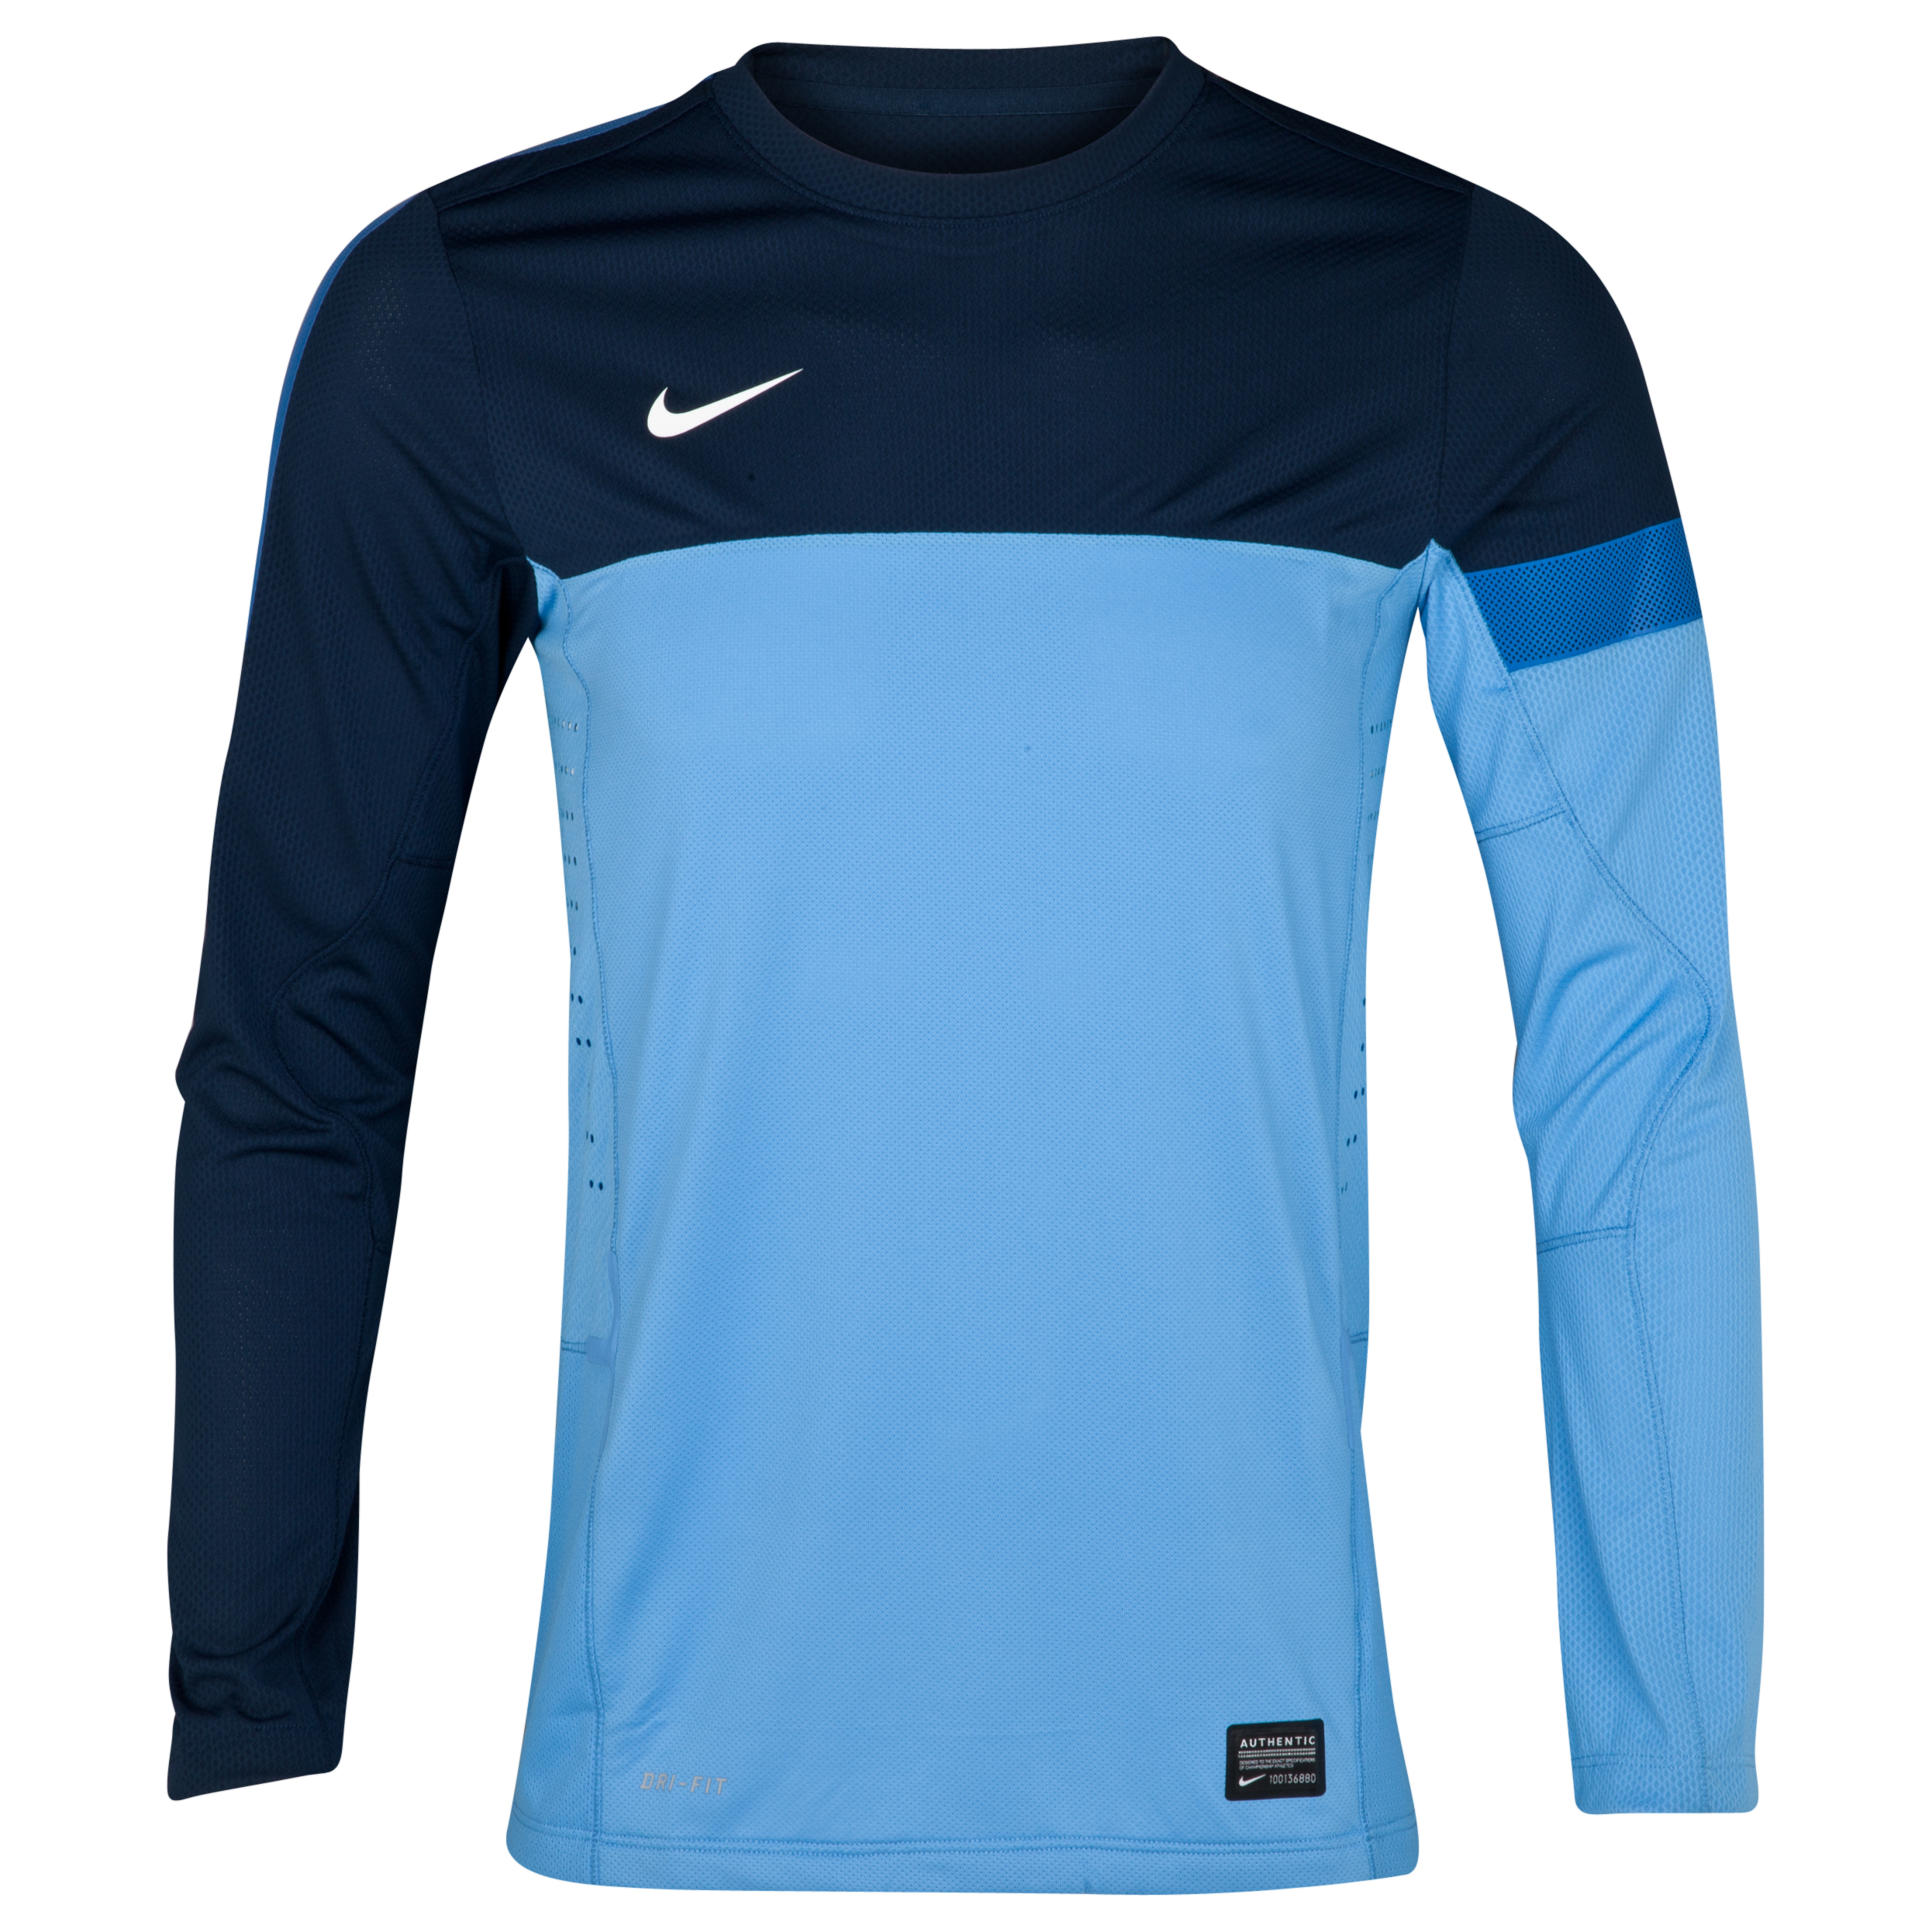 Nike Elite Training Top - Long Sleeve - University Blue/Light Midnight/White